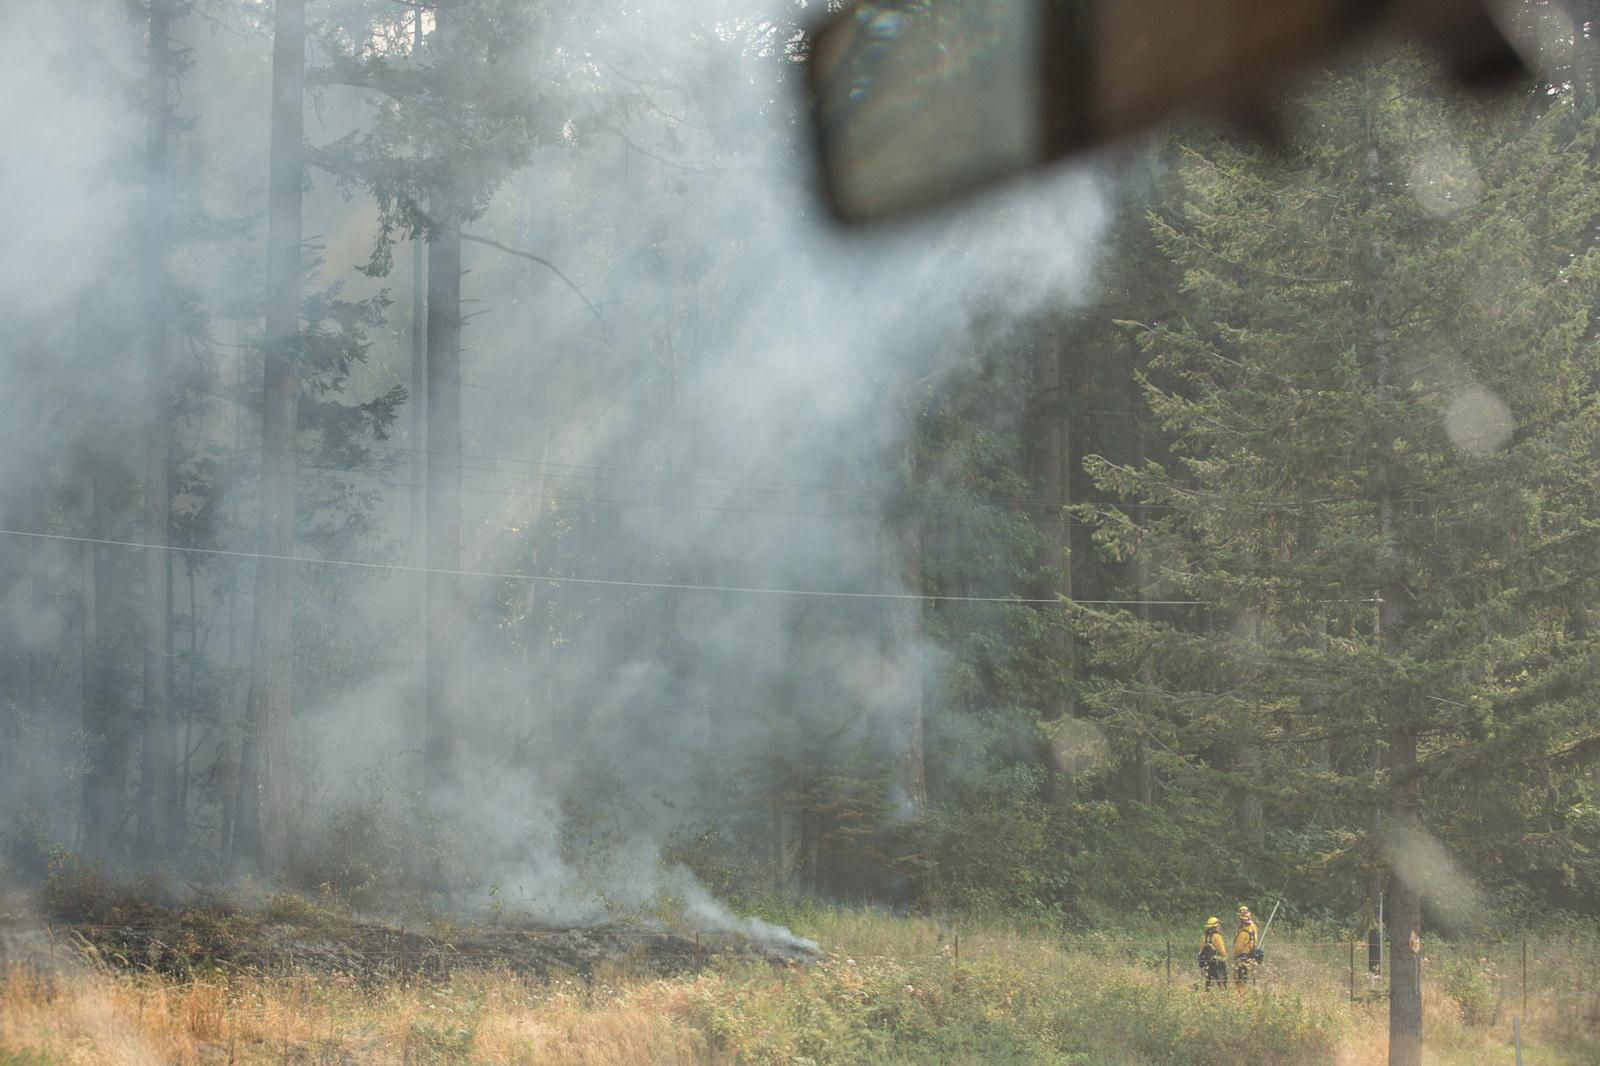 More than 900 firefighters are working to contain the Eagle Creek Fire in the Columbia River Gorge. Other local officials are working to keep pets safe and inform the public. Photo courtesy Multnomah County Communications